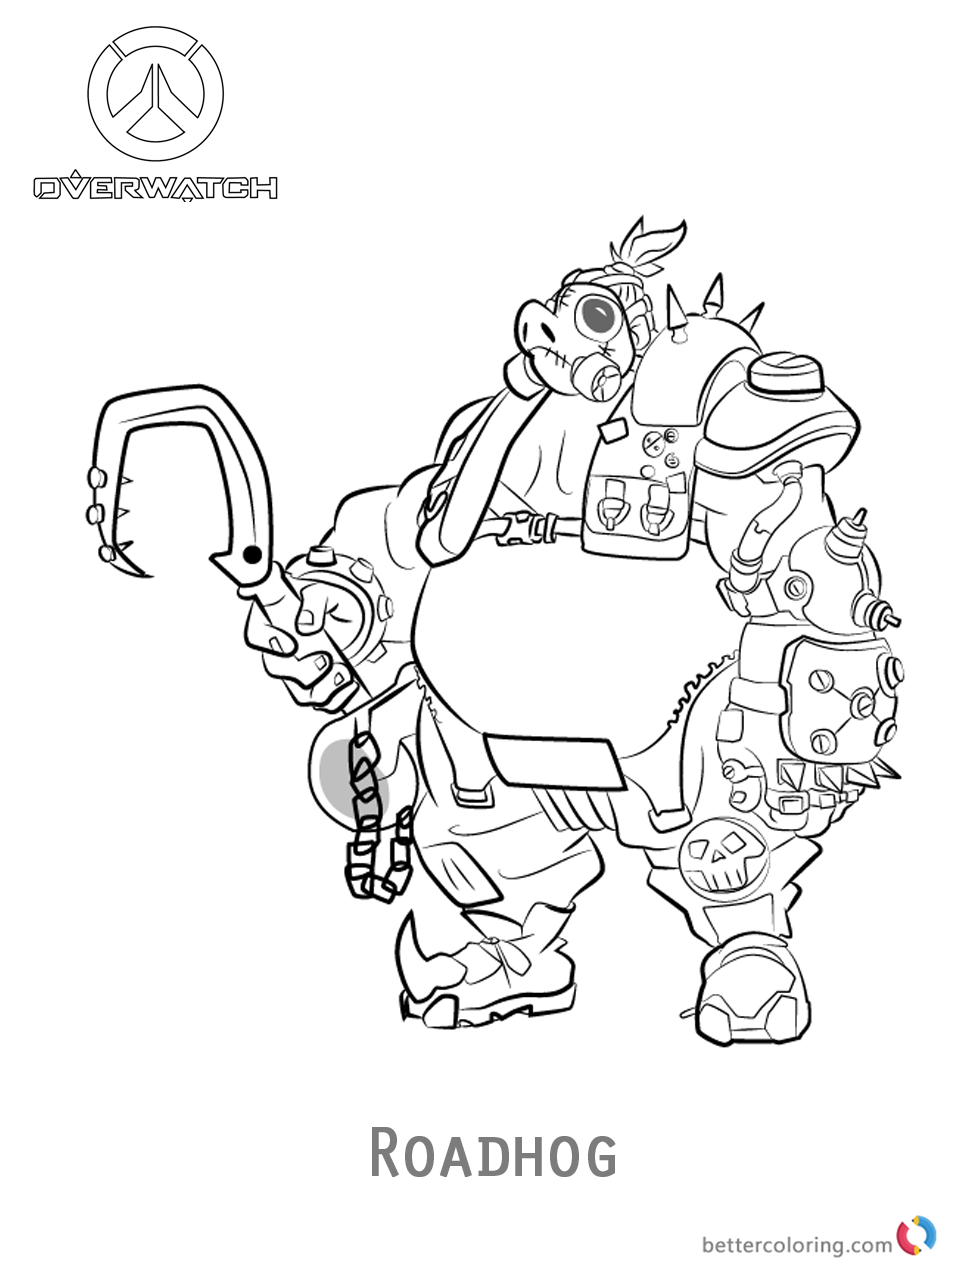 Roadhog from Overwatch coloring pages printable